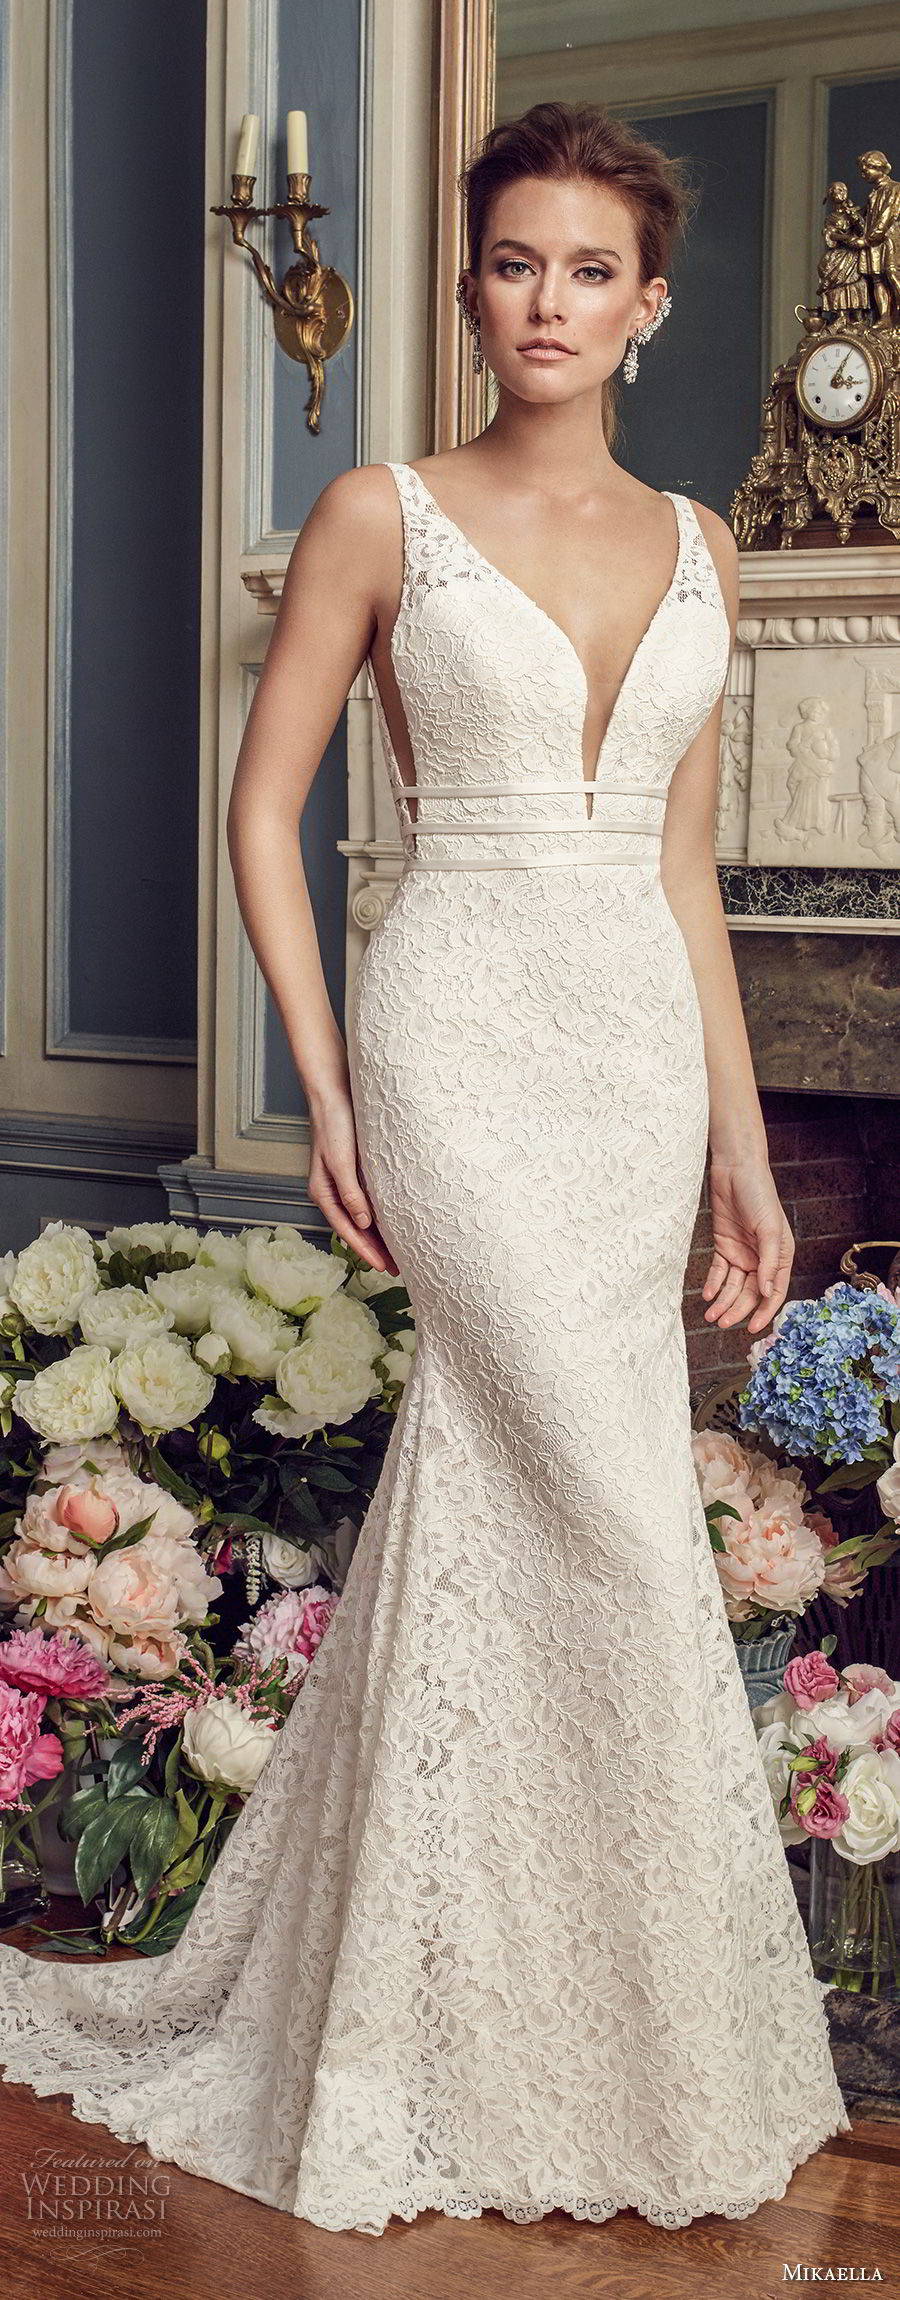 mikaella fall 2017 bridal sleeveless deep plunging sweetheart neckline full embellishment elegant fit and flare wedding dress open square back medium train (2154) mv